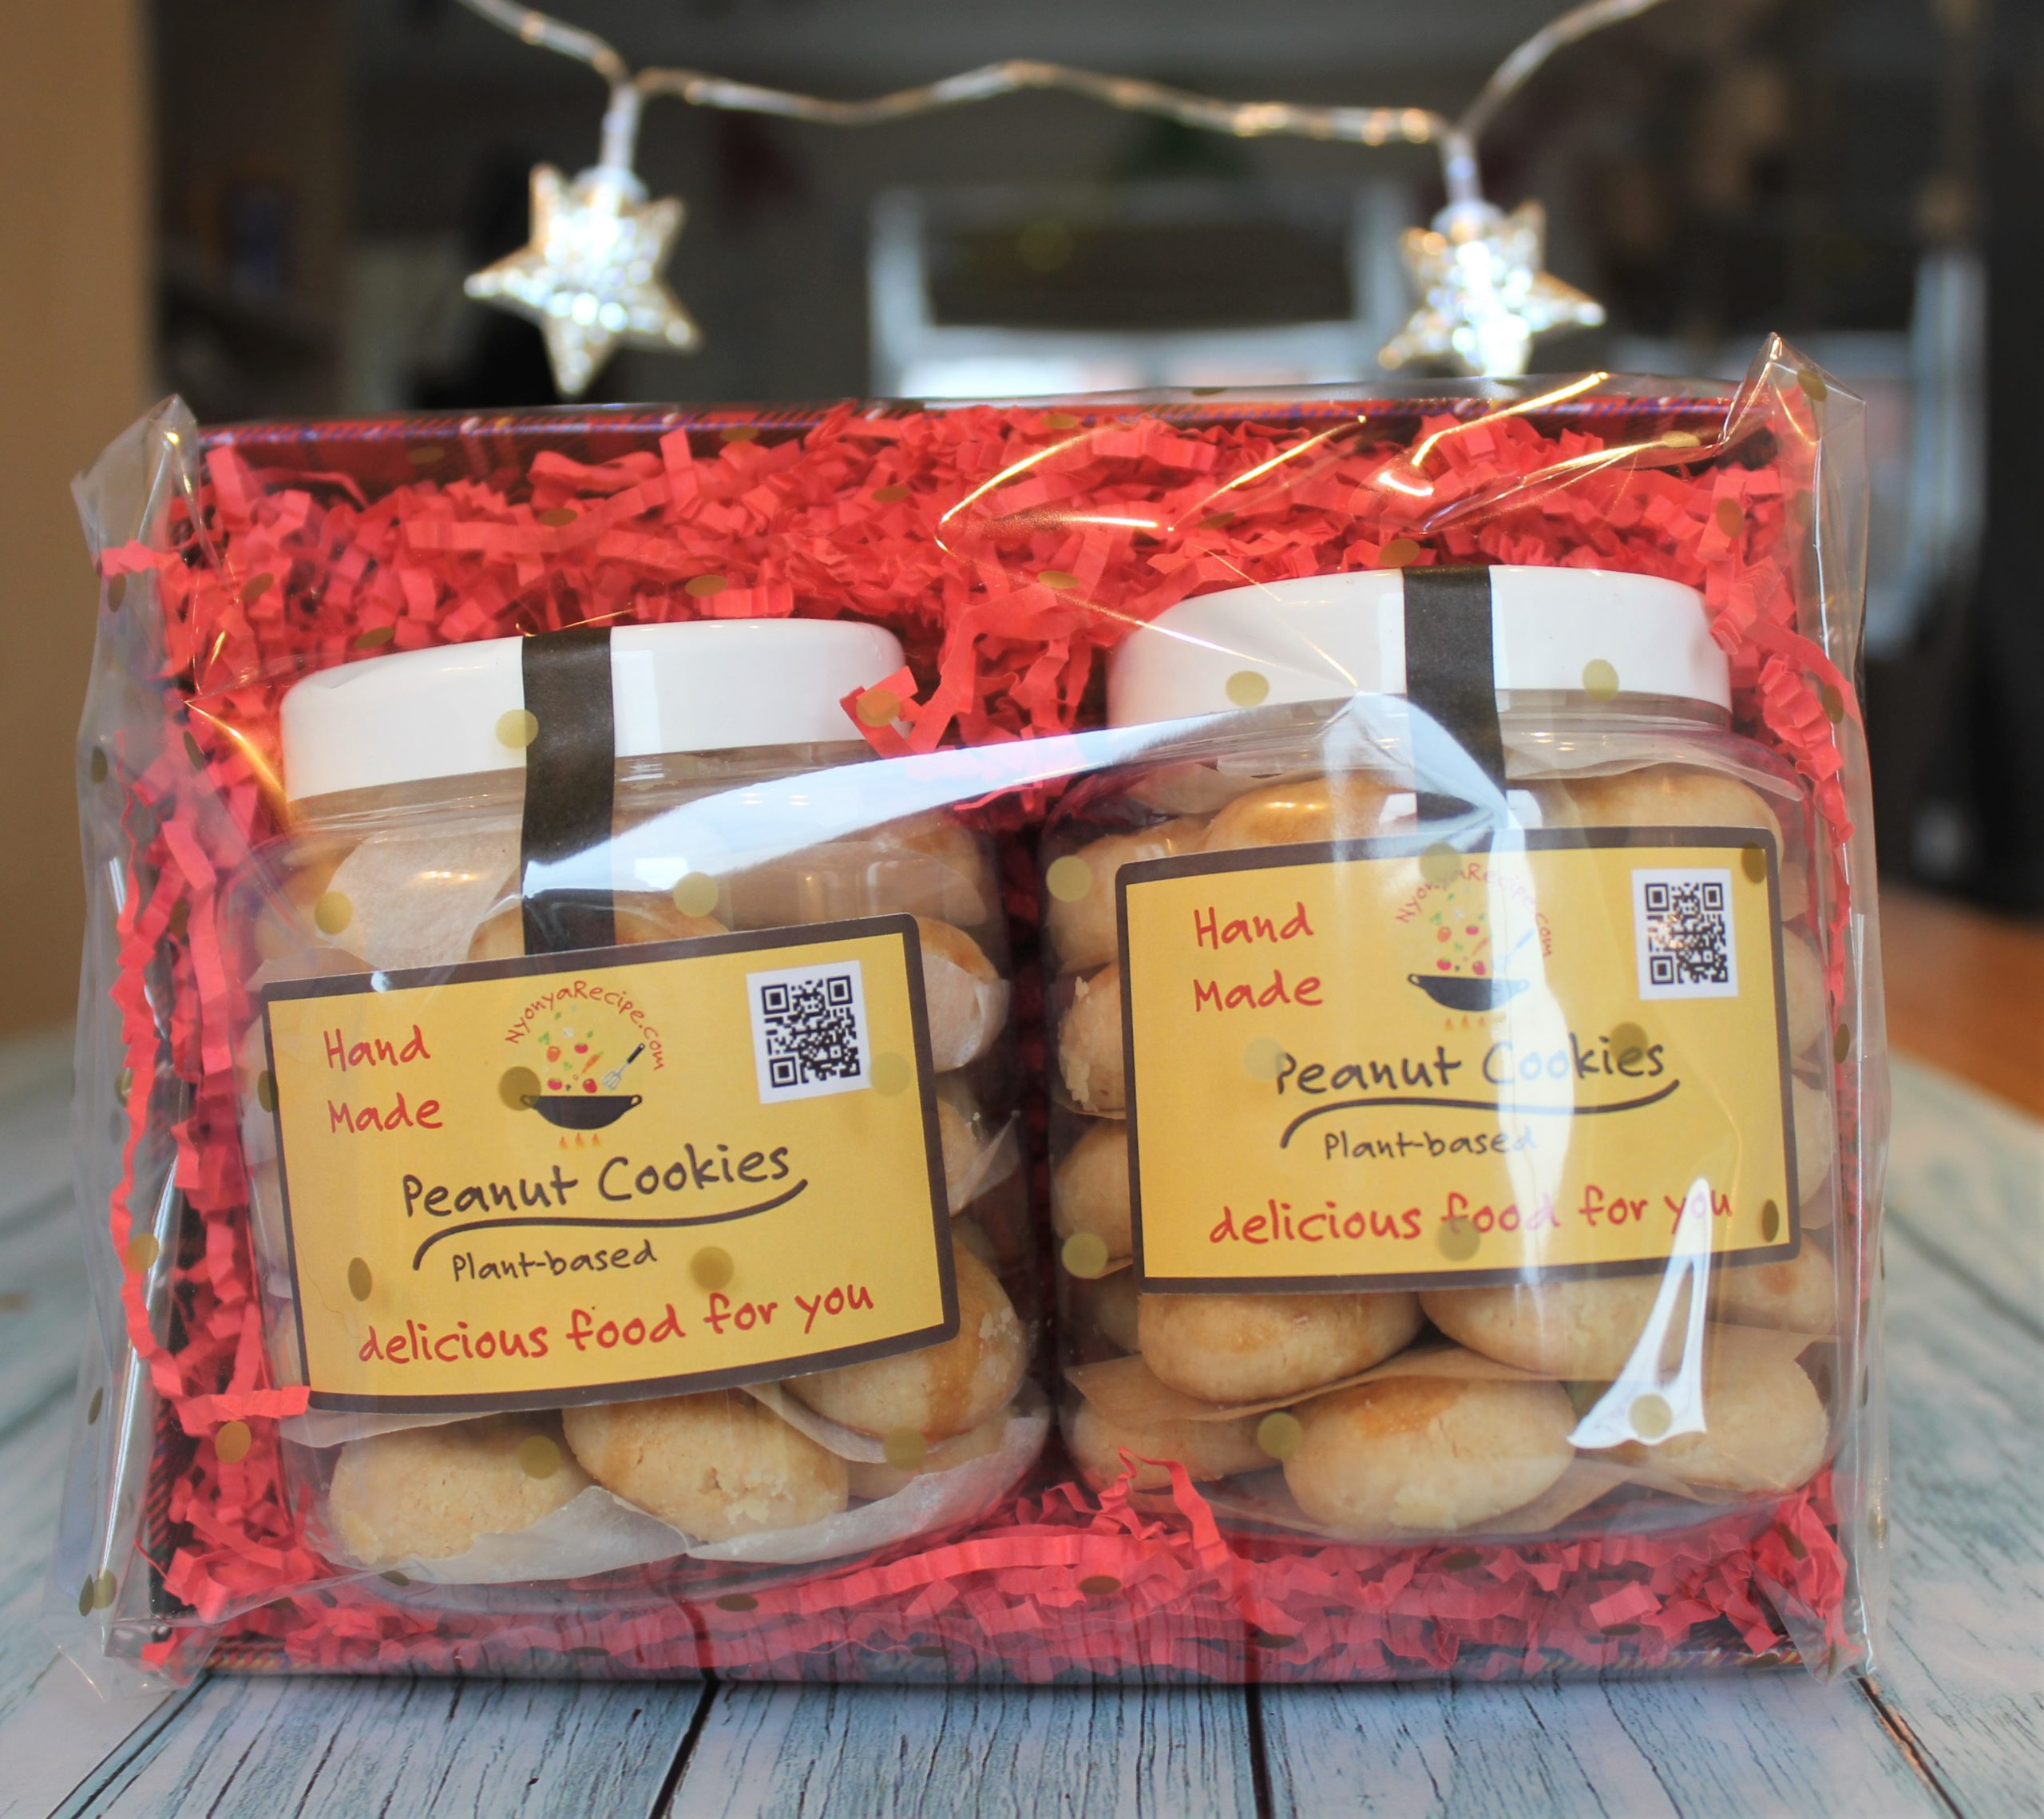 2 jars of plant-base peanut cookies packed as a gift.